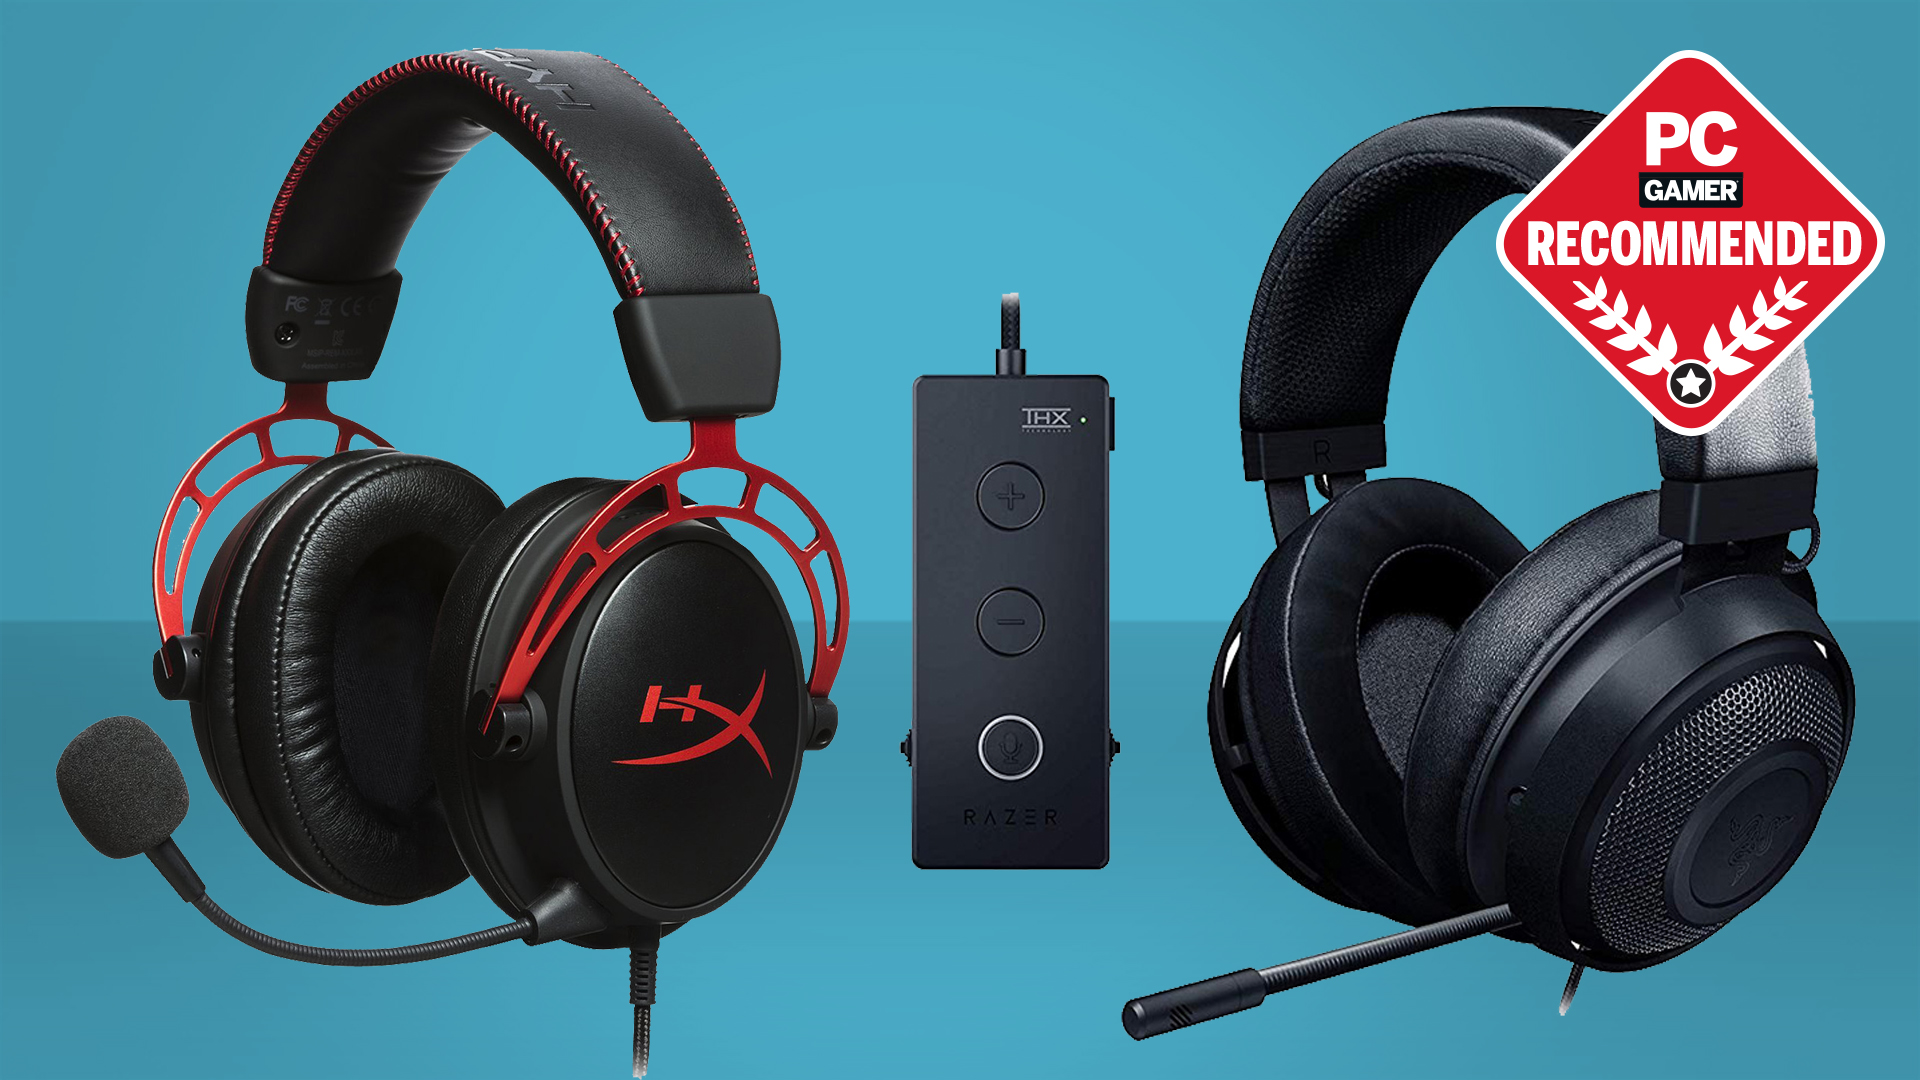 32 Best Gaming headphones images